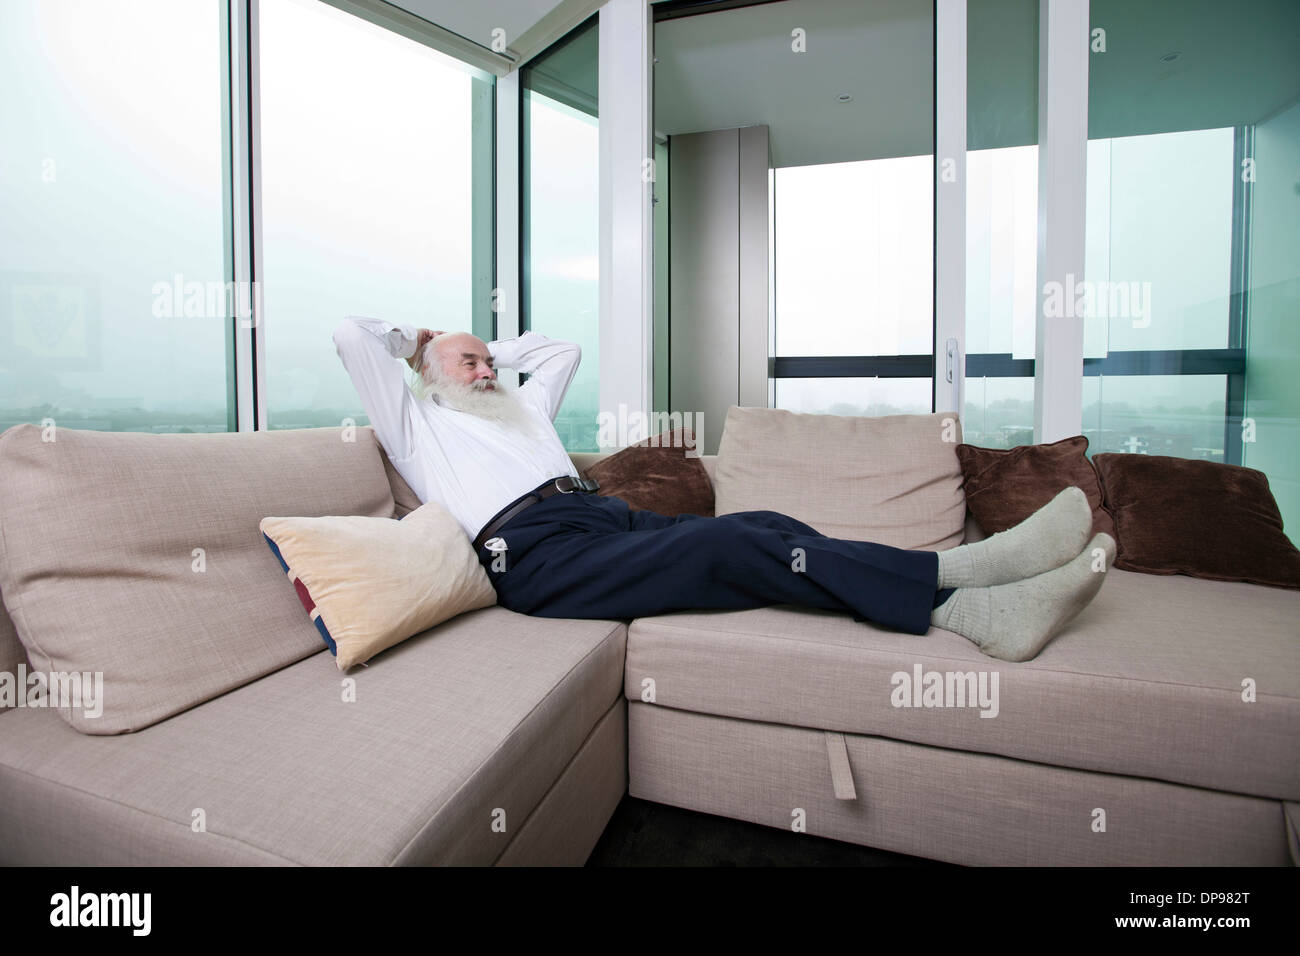 Full length of senior man relaxing on sofa with hands behind head at home - Stock Image